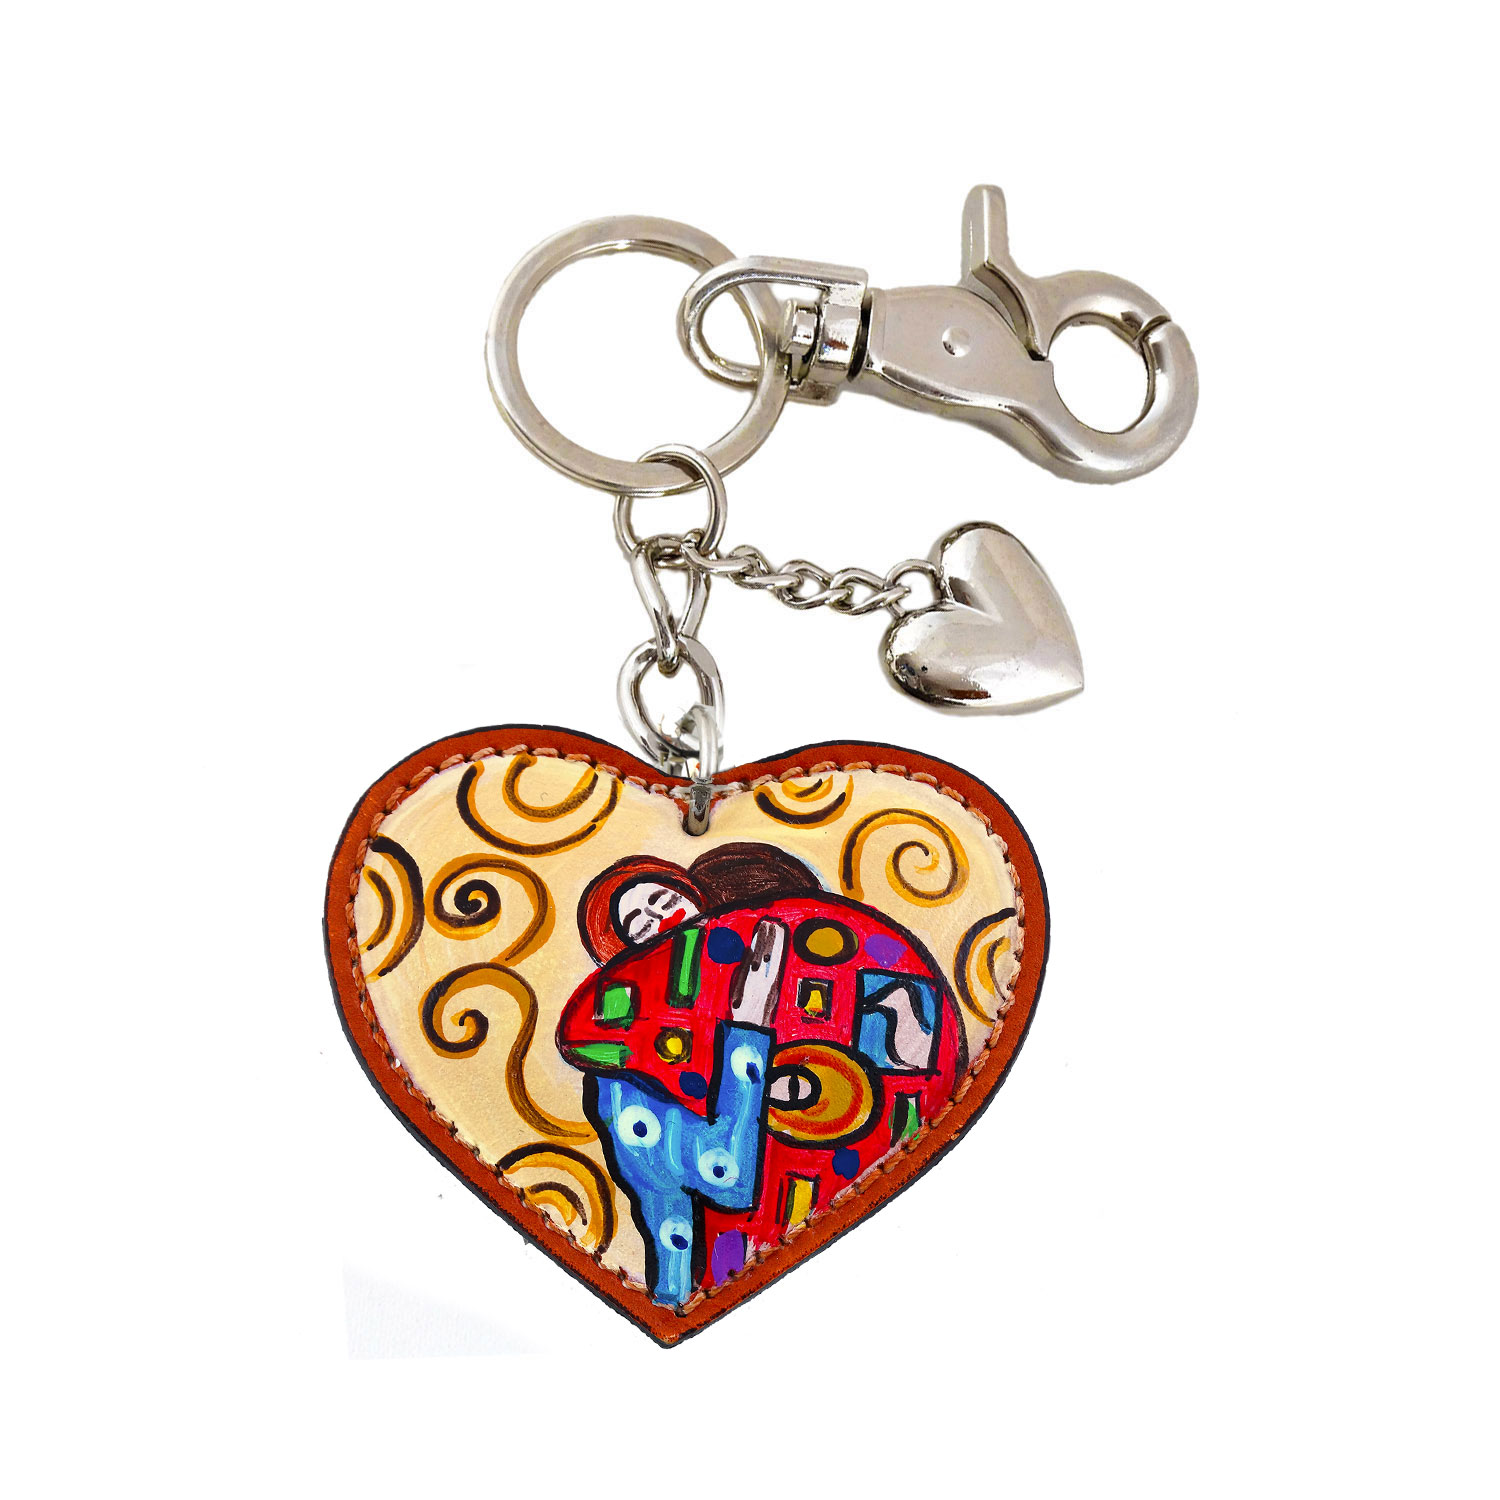 Hand painted keyring - The embrace by Klimt